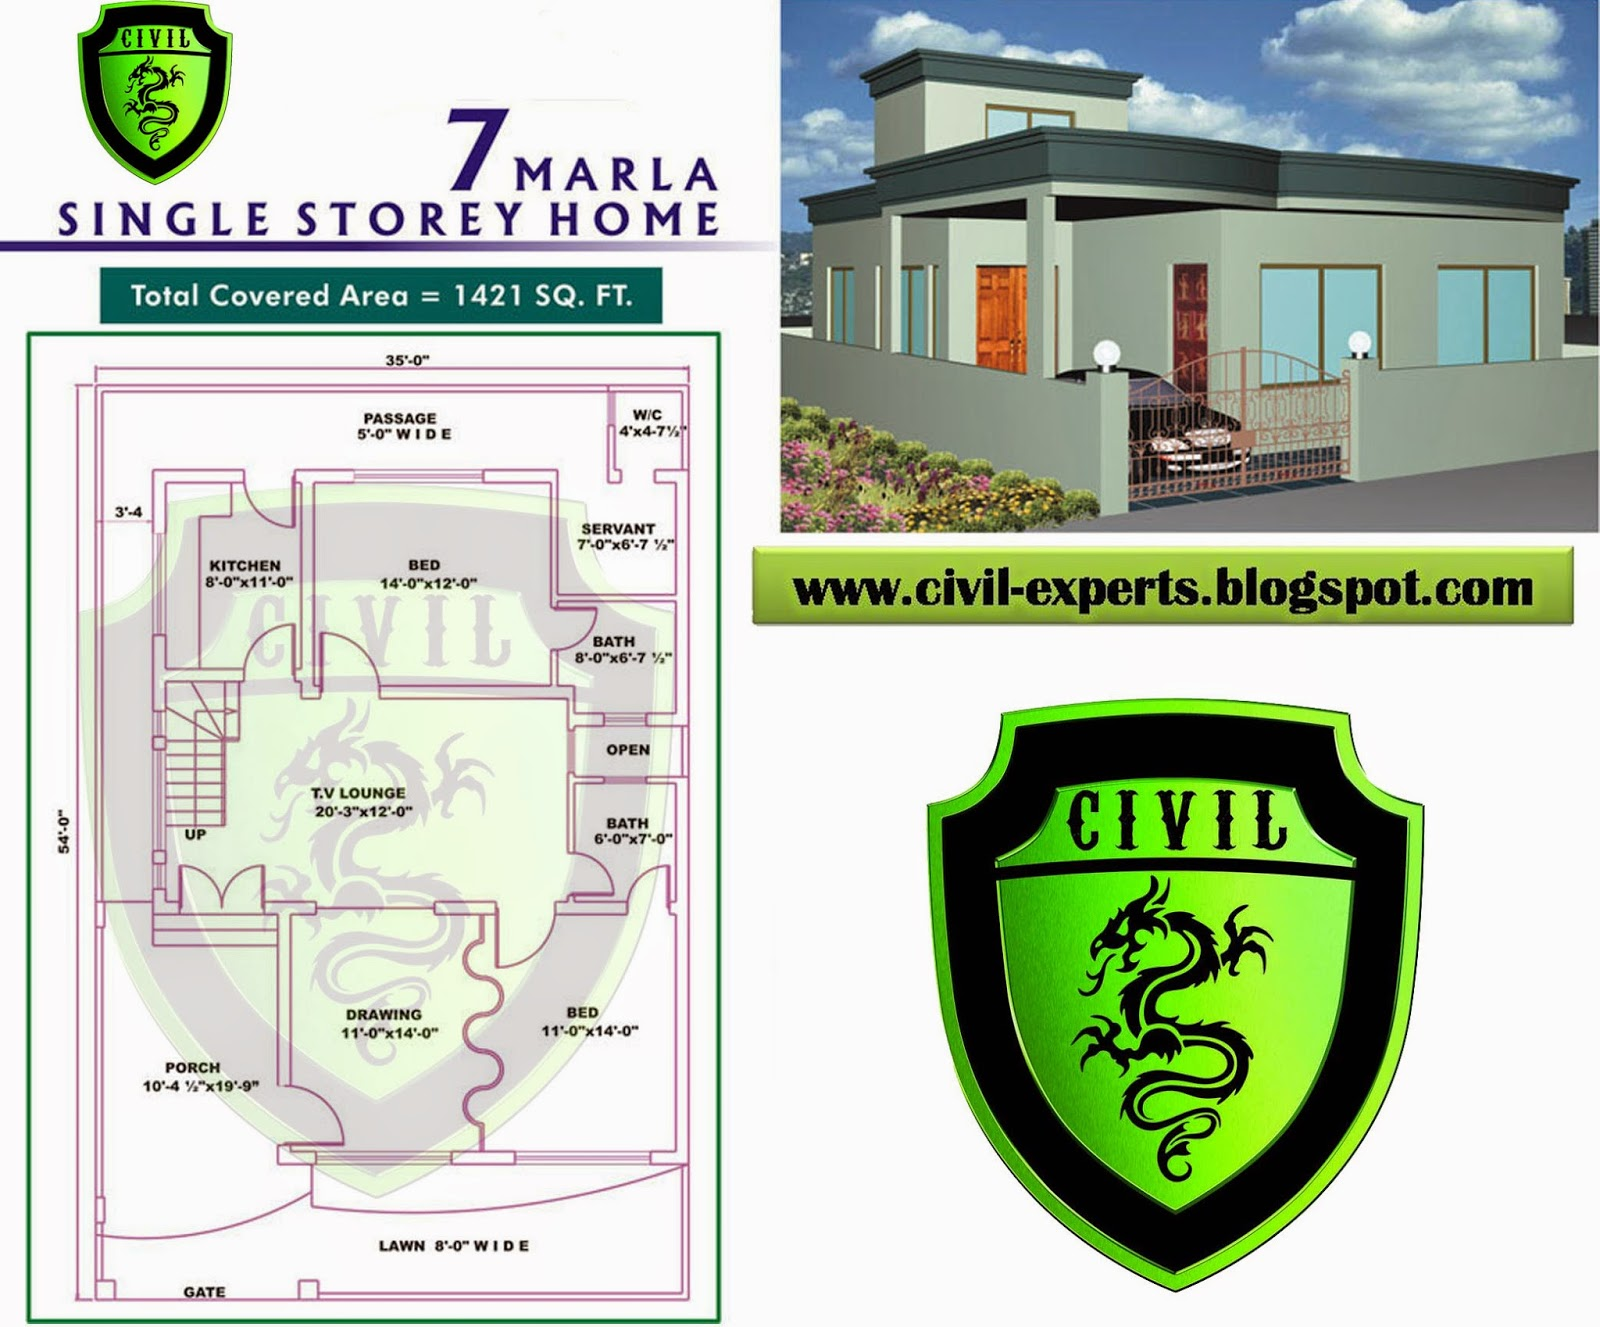 Civil Experts: 7 Marla House Plans on